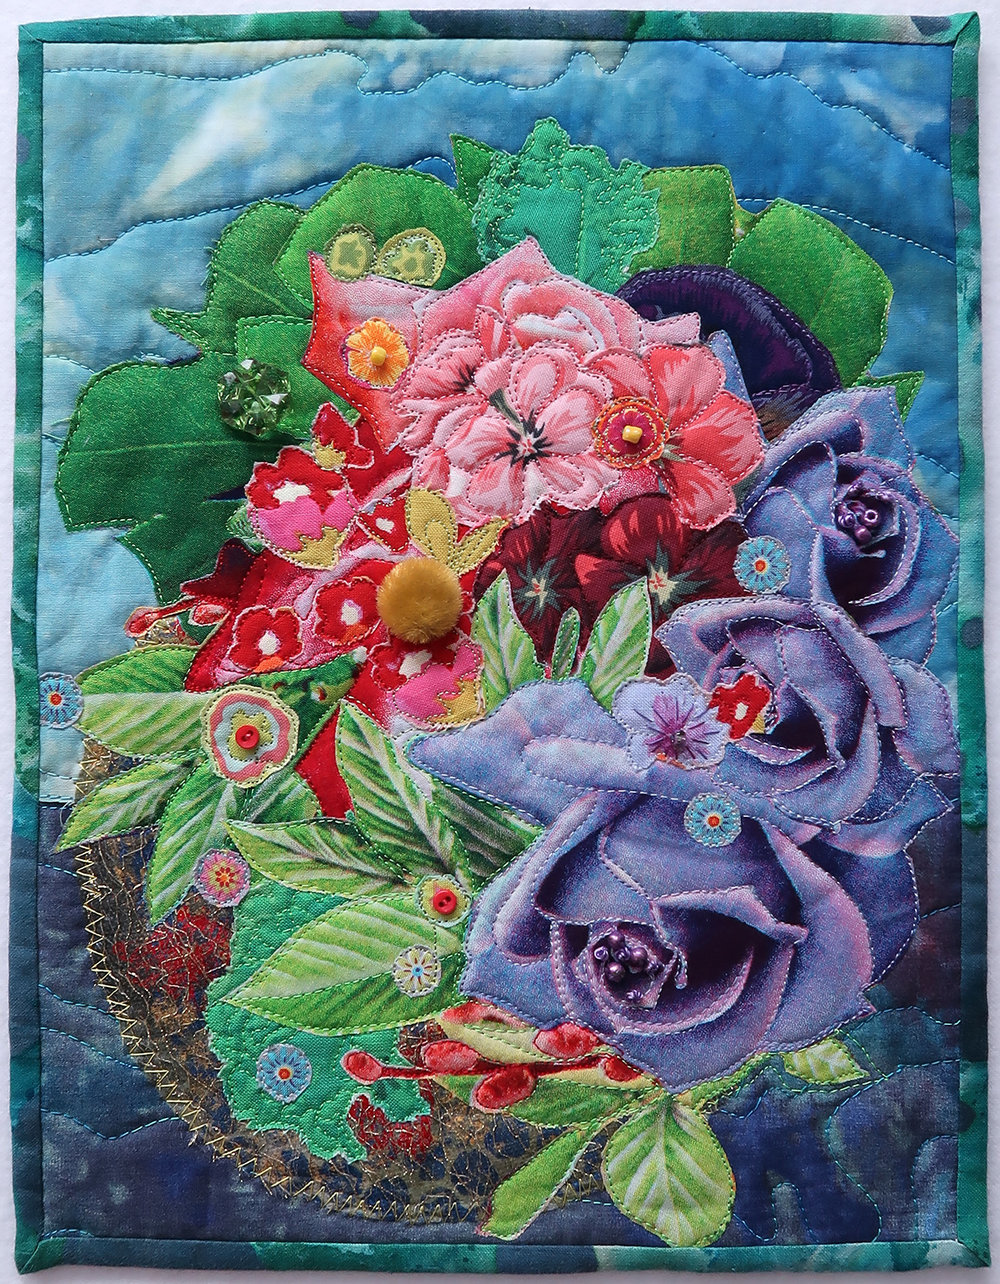 """Underwater Bouquet - 8.5"""" x 11""""I am continuously inspired by my experience scuba diving and the diversity of life in the ocean. Like a garden scape of life so rich and colourful, this work started from a seed, ideas and decisions nurtured one after another. I am a true explorer on every dive, and artistic challenge."""